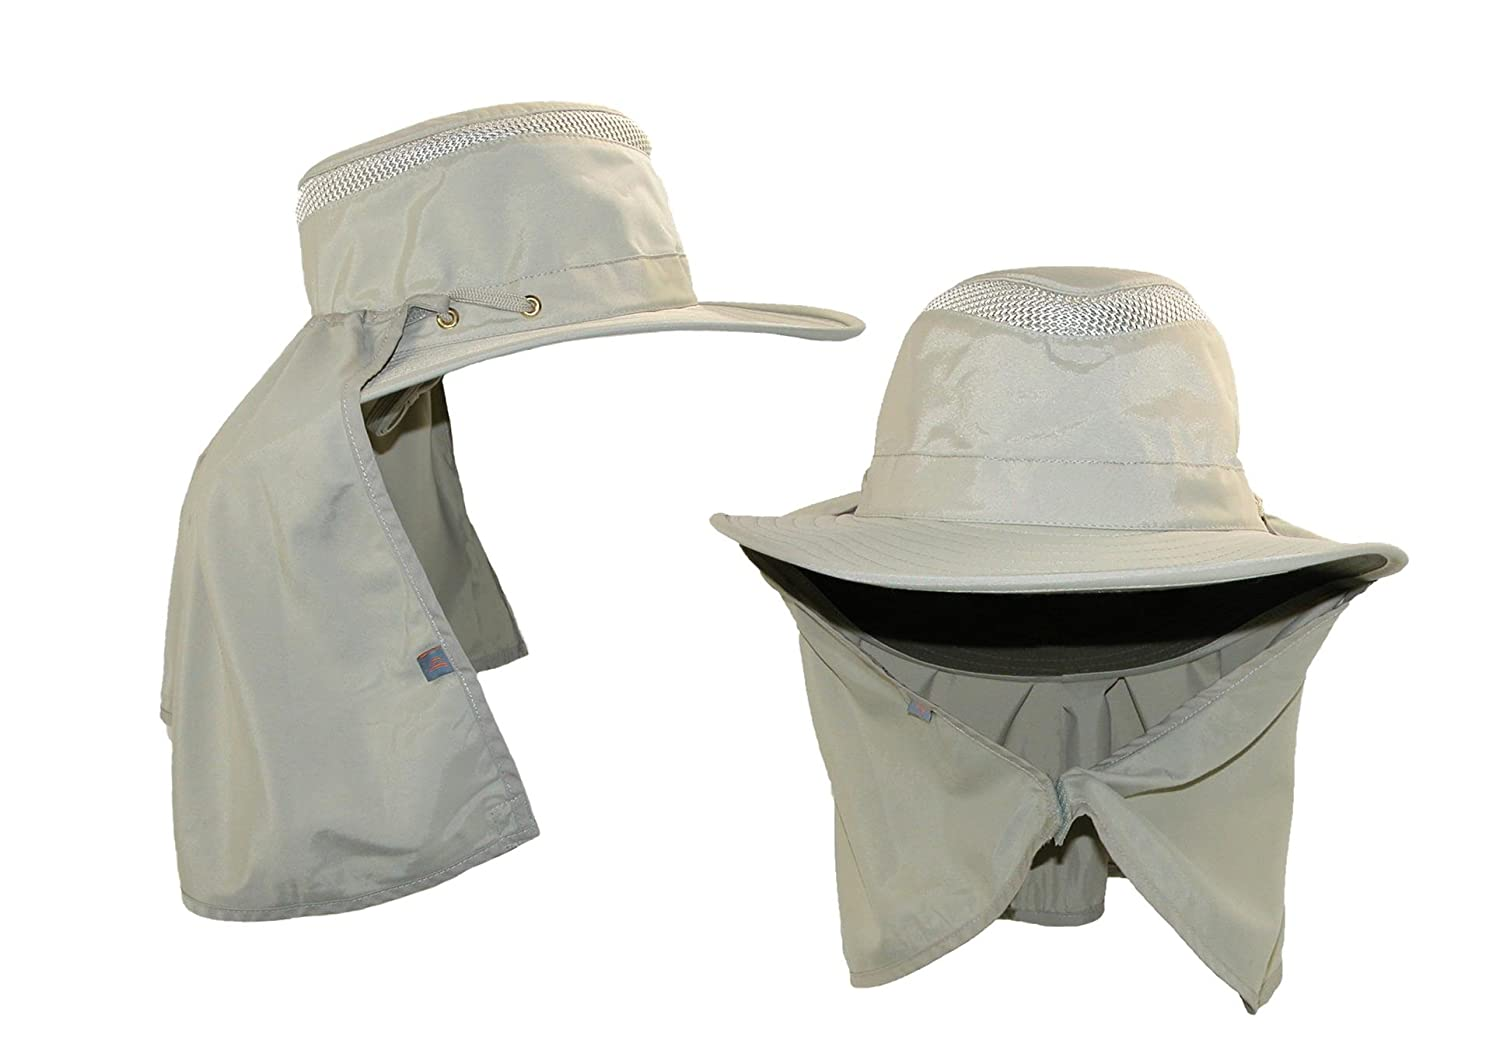 fd2f78408bb Amazon.com  Tilley Endurables TCA Cape Attachment - Khaki  Sports   Outdoors